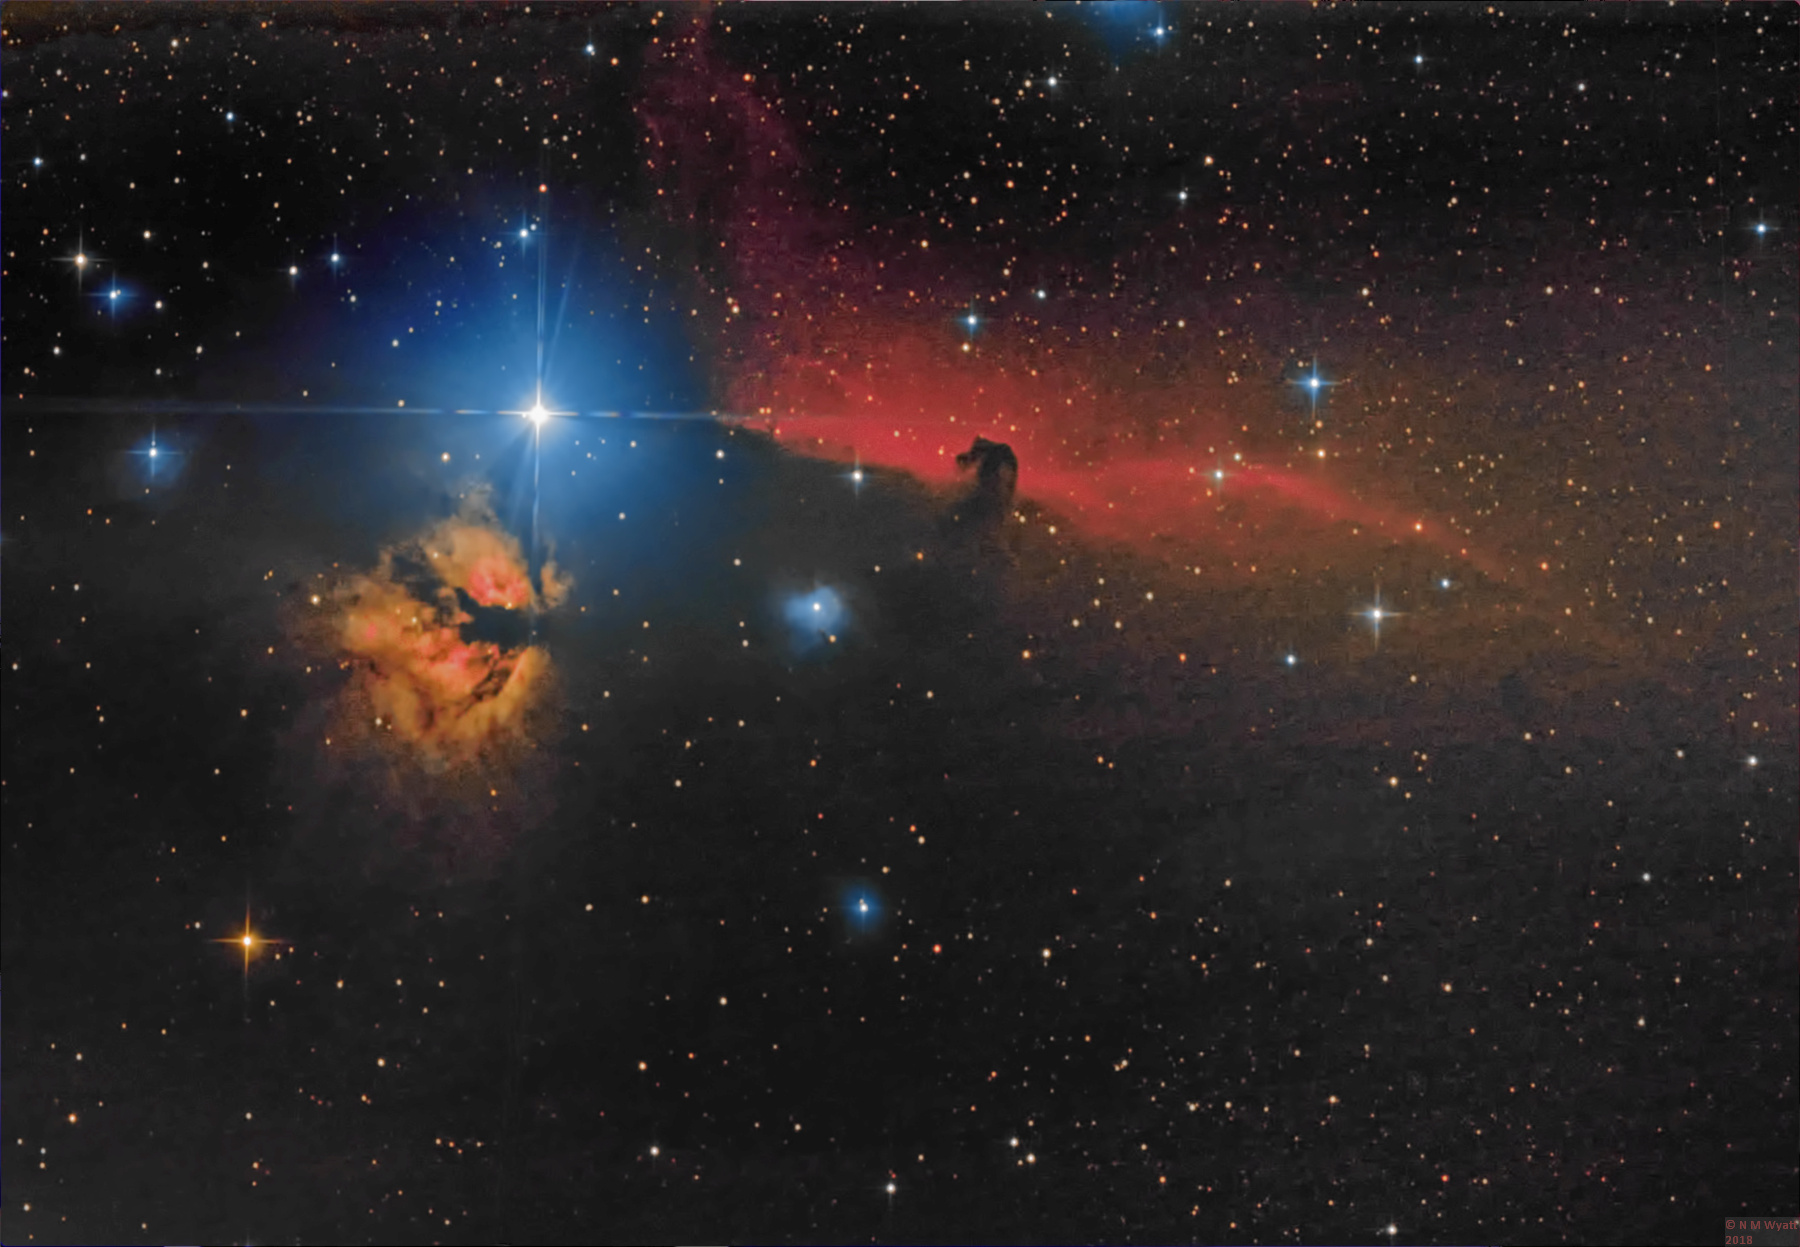 The bFalme and Horsehead Nebulas in Orion